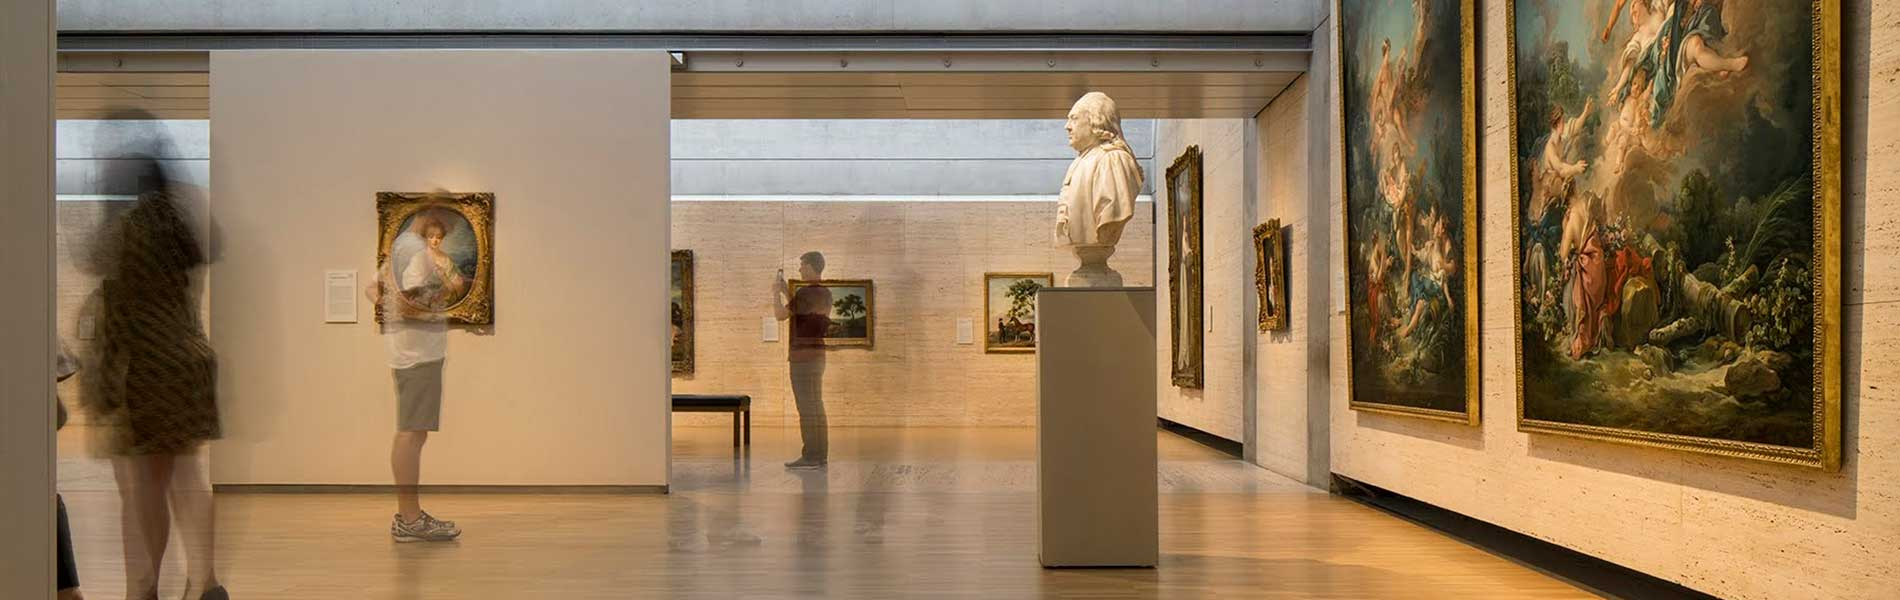 View of a gallery with visitors at the Kimbell Art Museum